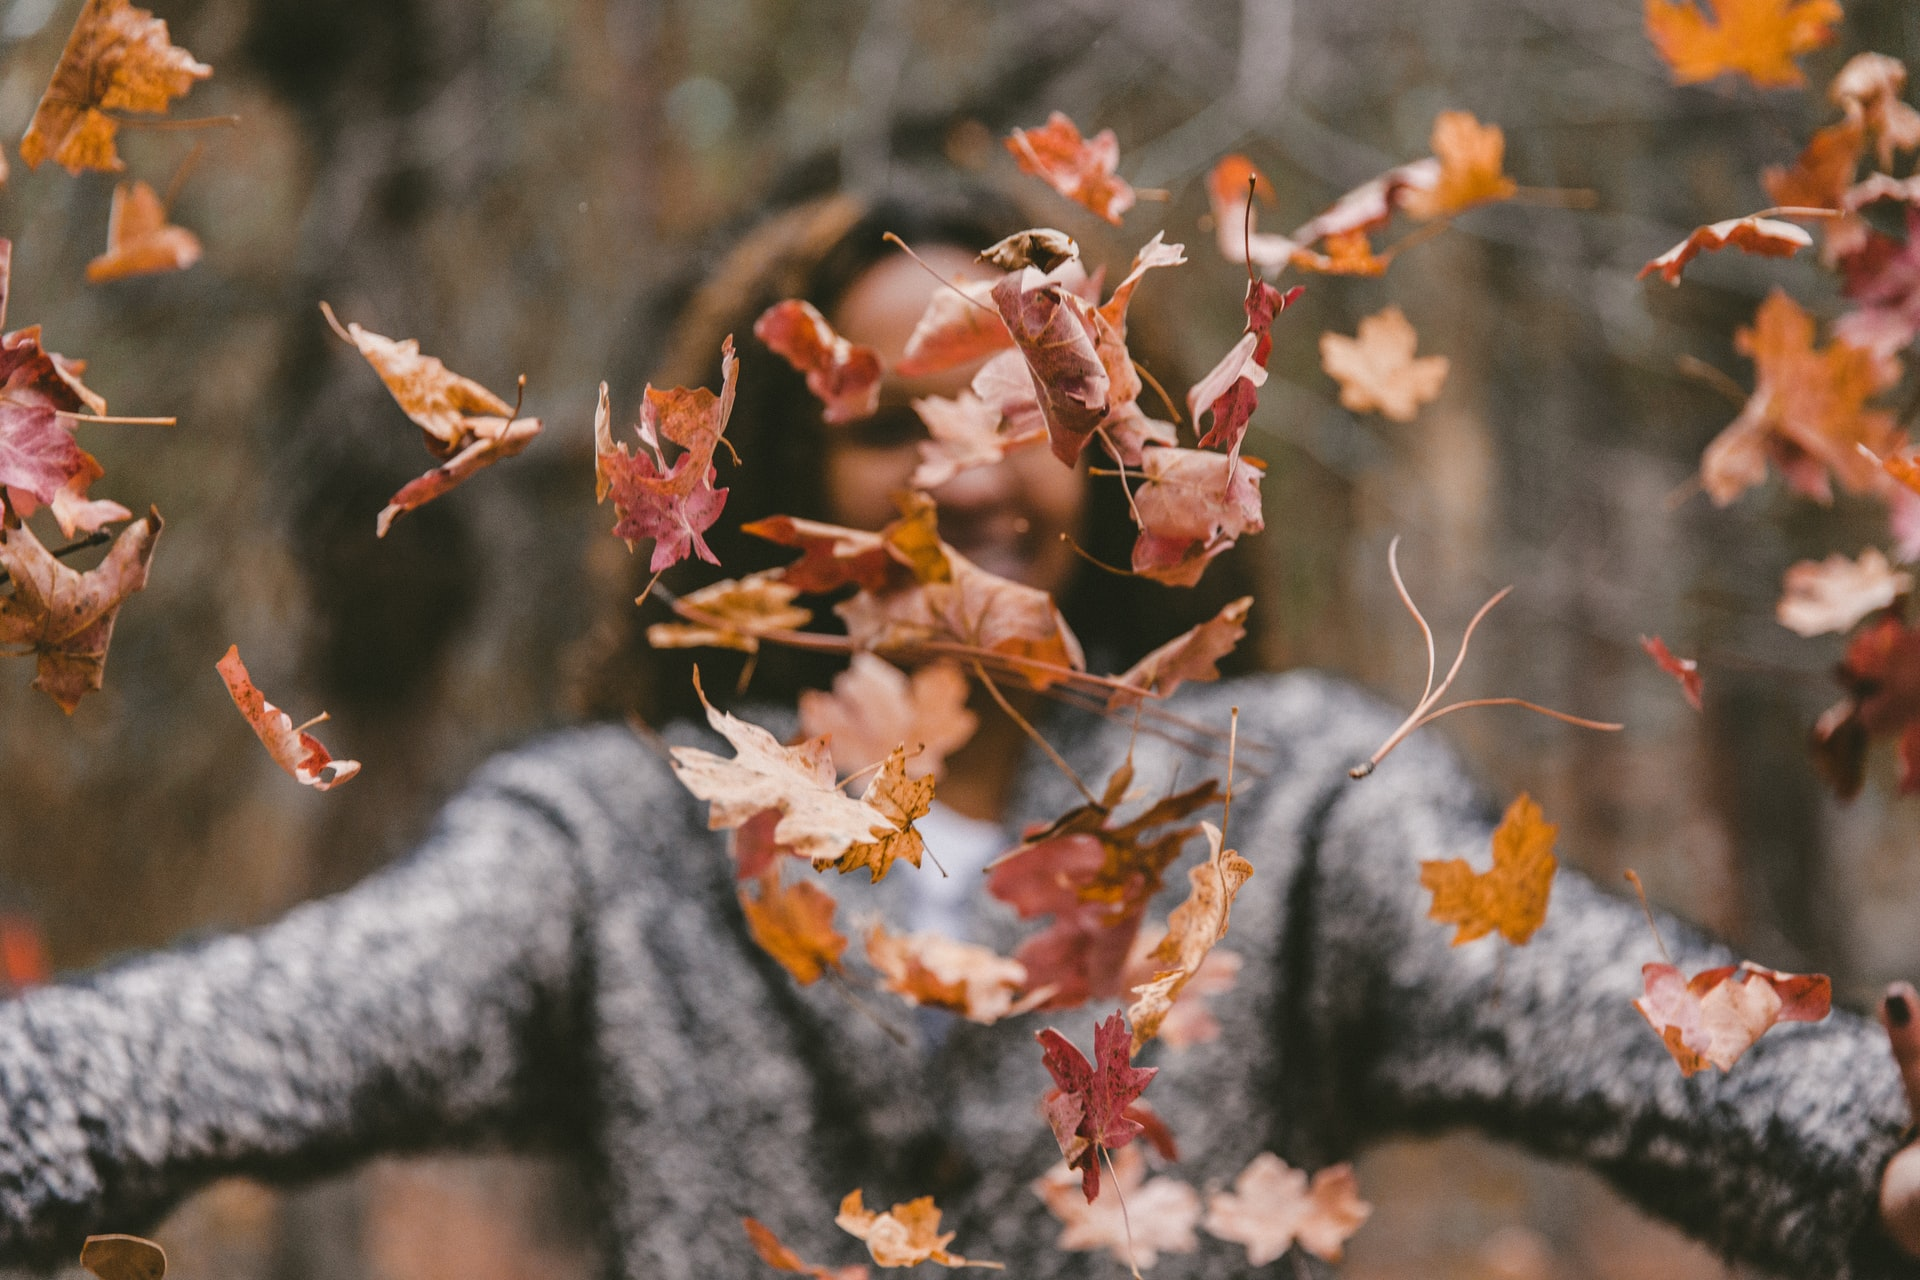 woman throwing autumn leaves